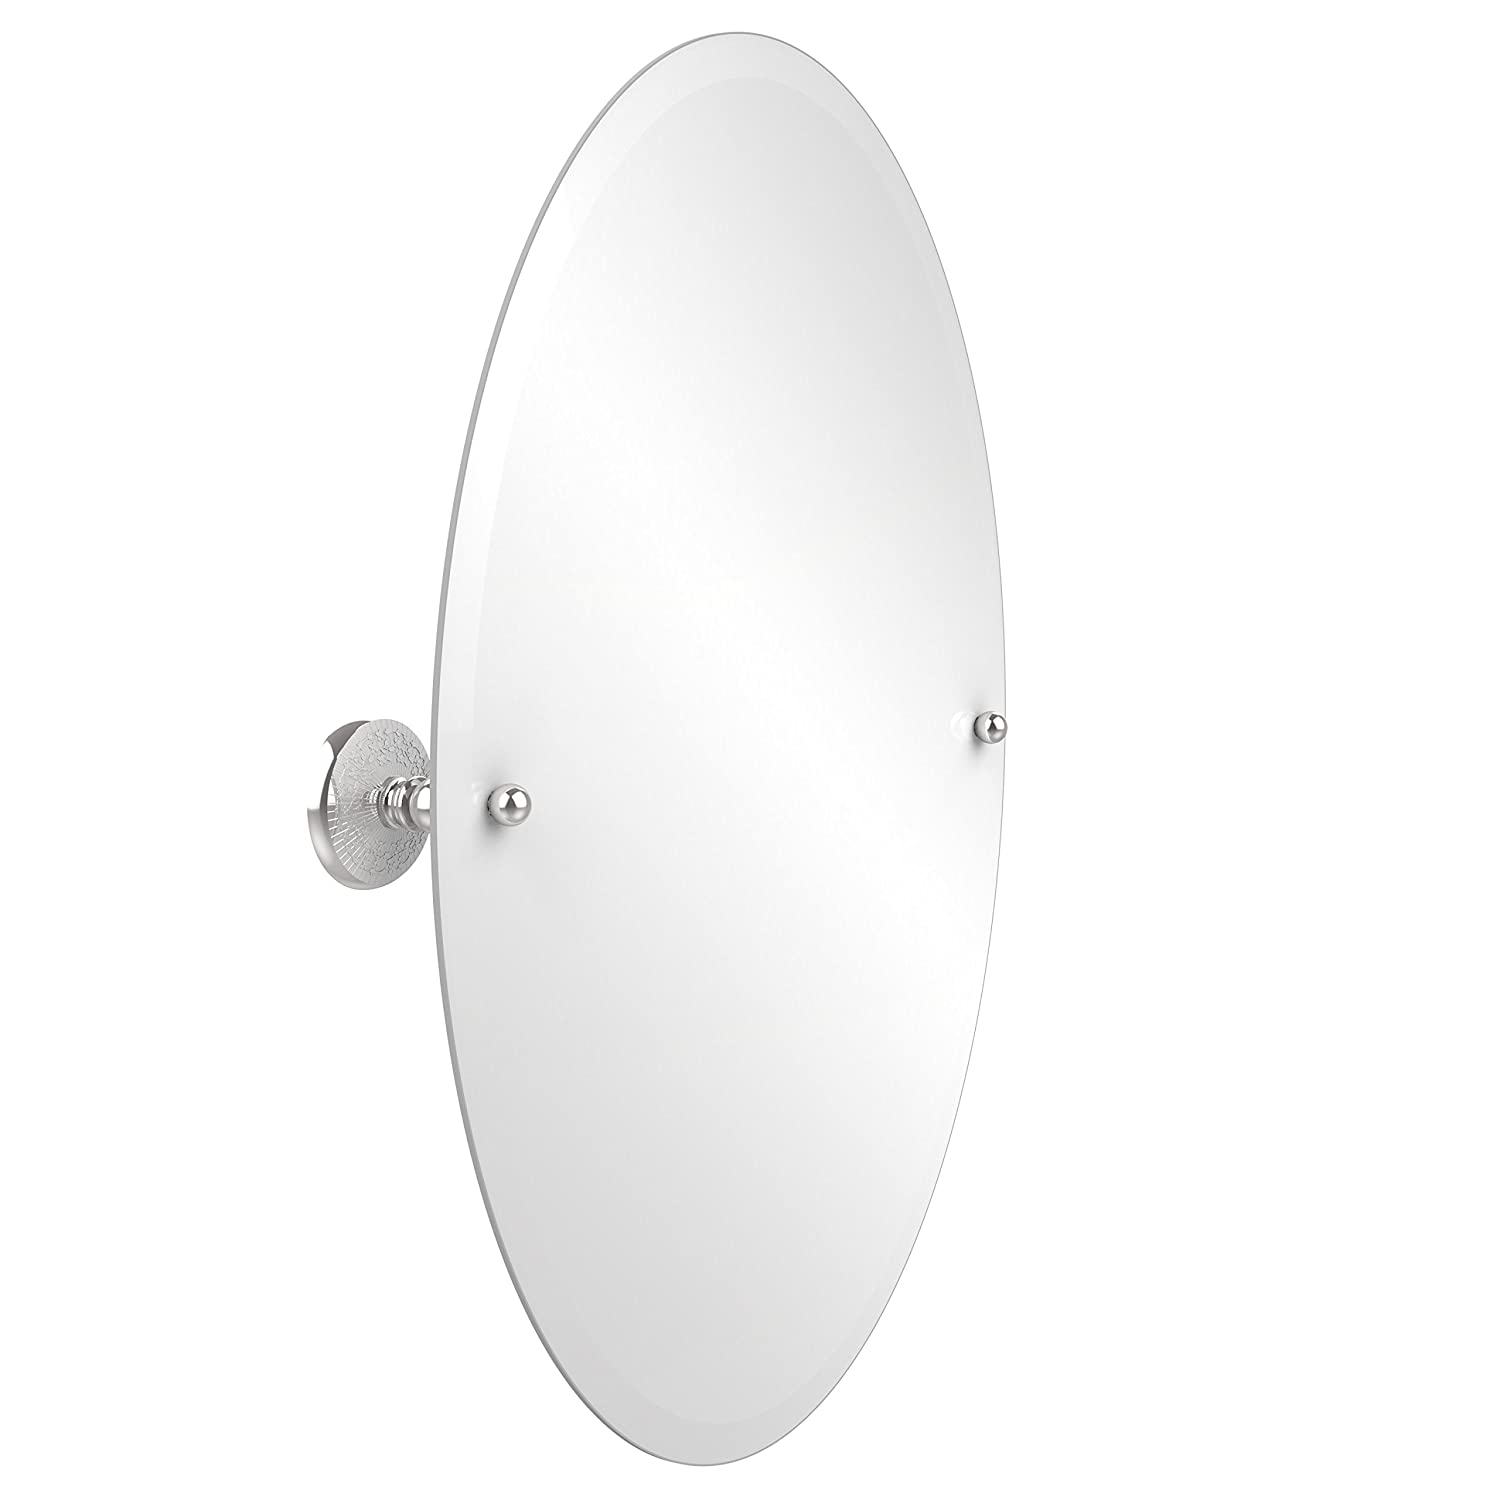 Allied Brass PMC-91-PC 29-Inch X 21-Inch Oval Tilt Mirror, Polished Chrome by Allied Brass B008NYVSE2  光沢クロム